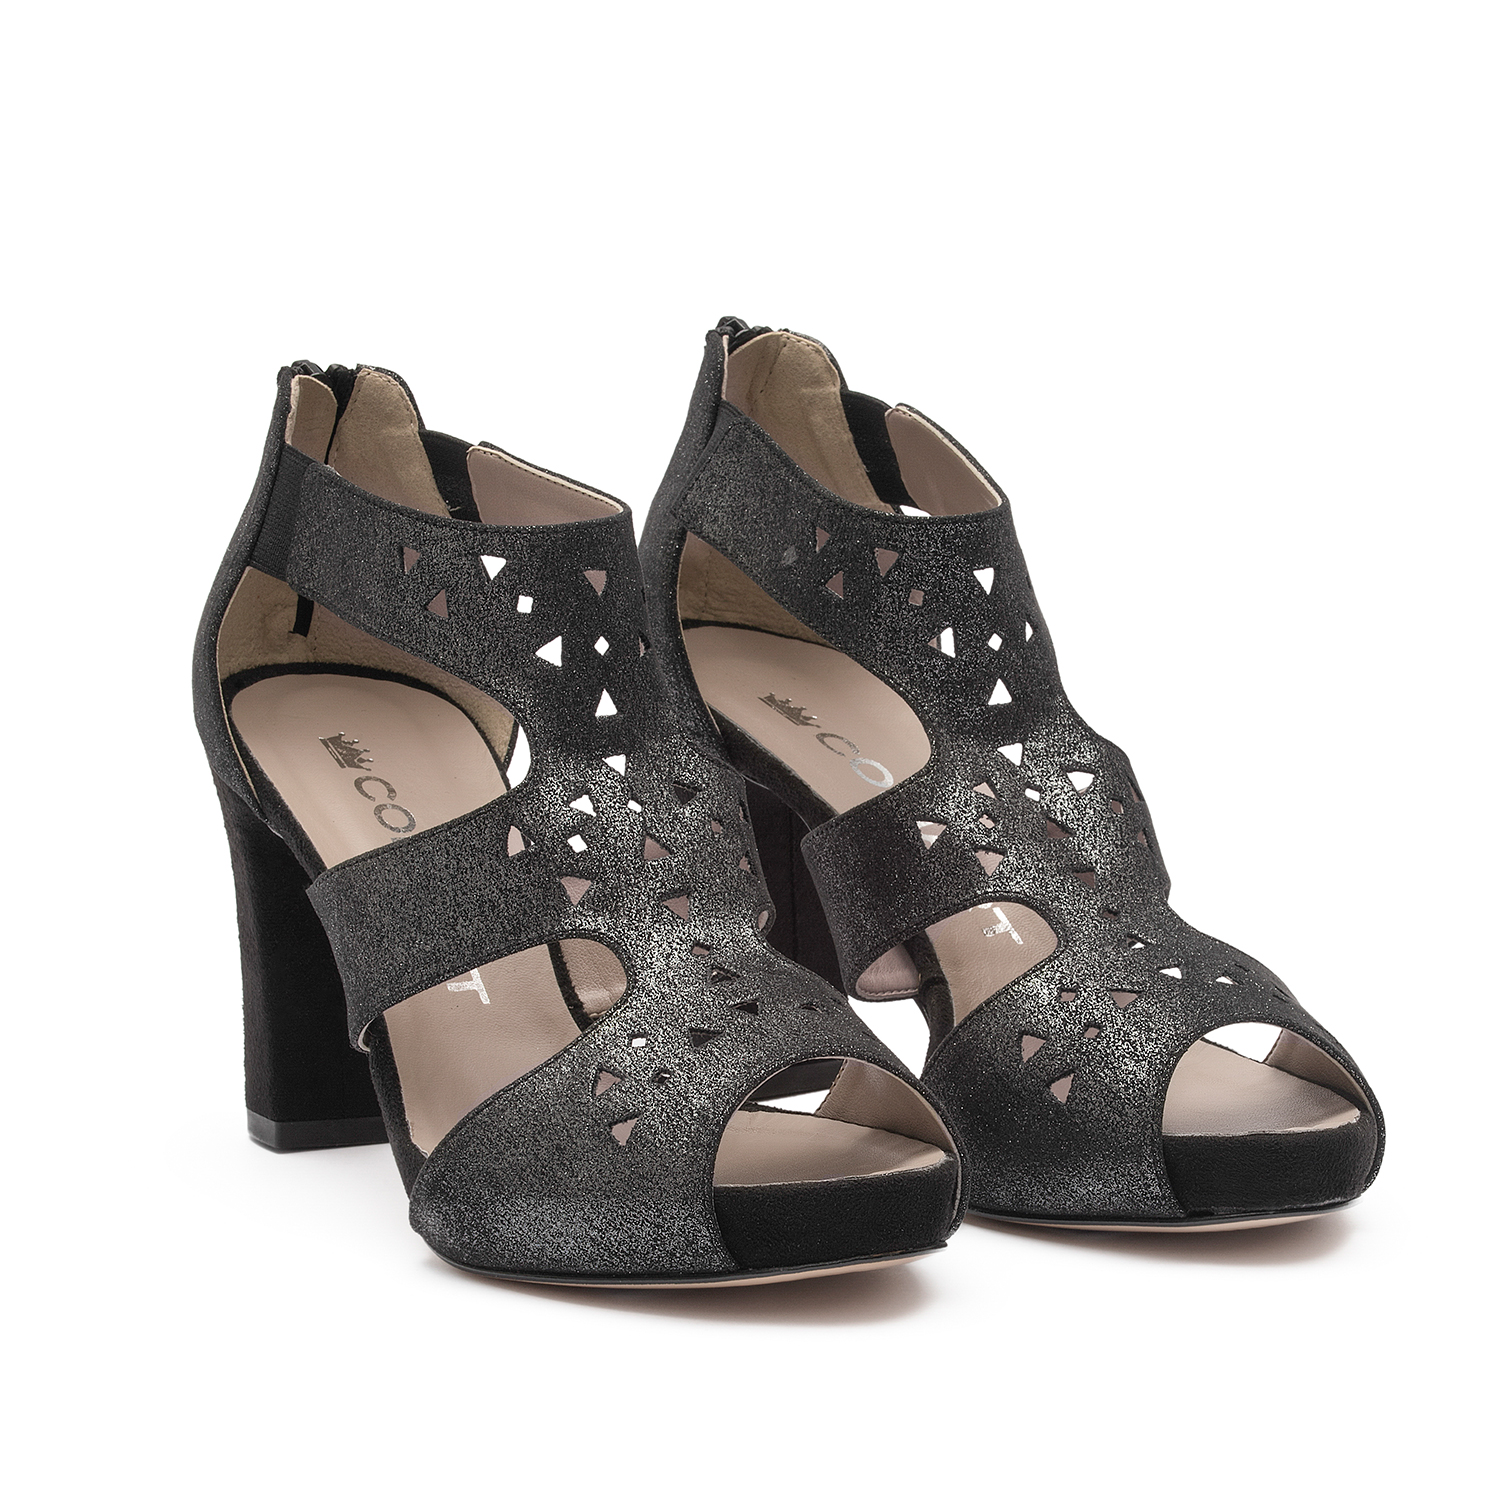 91967 - Sandal with upper in black glittery fabric suede, heel and plateau covered in black suede, decoration with laser punching and zip at the heel.